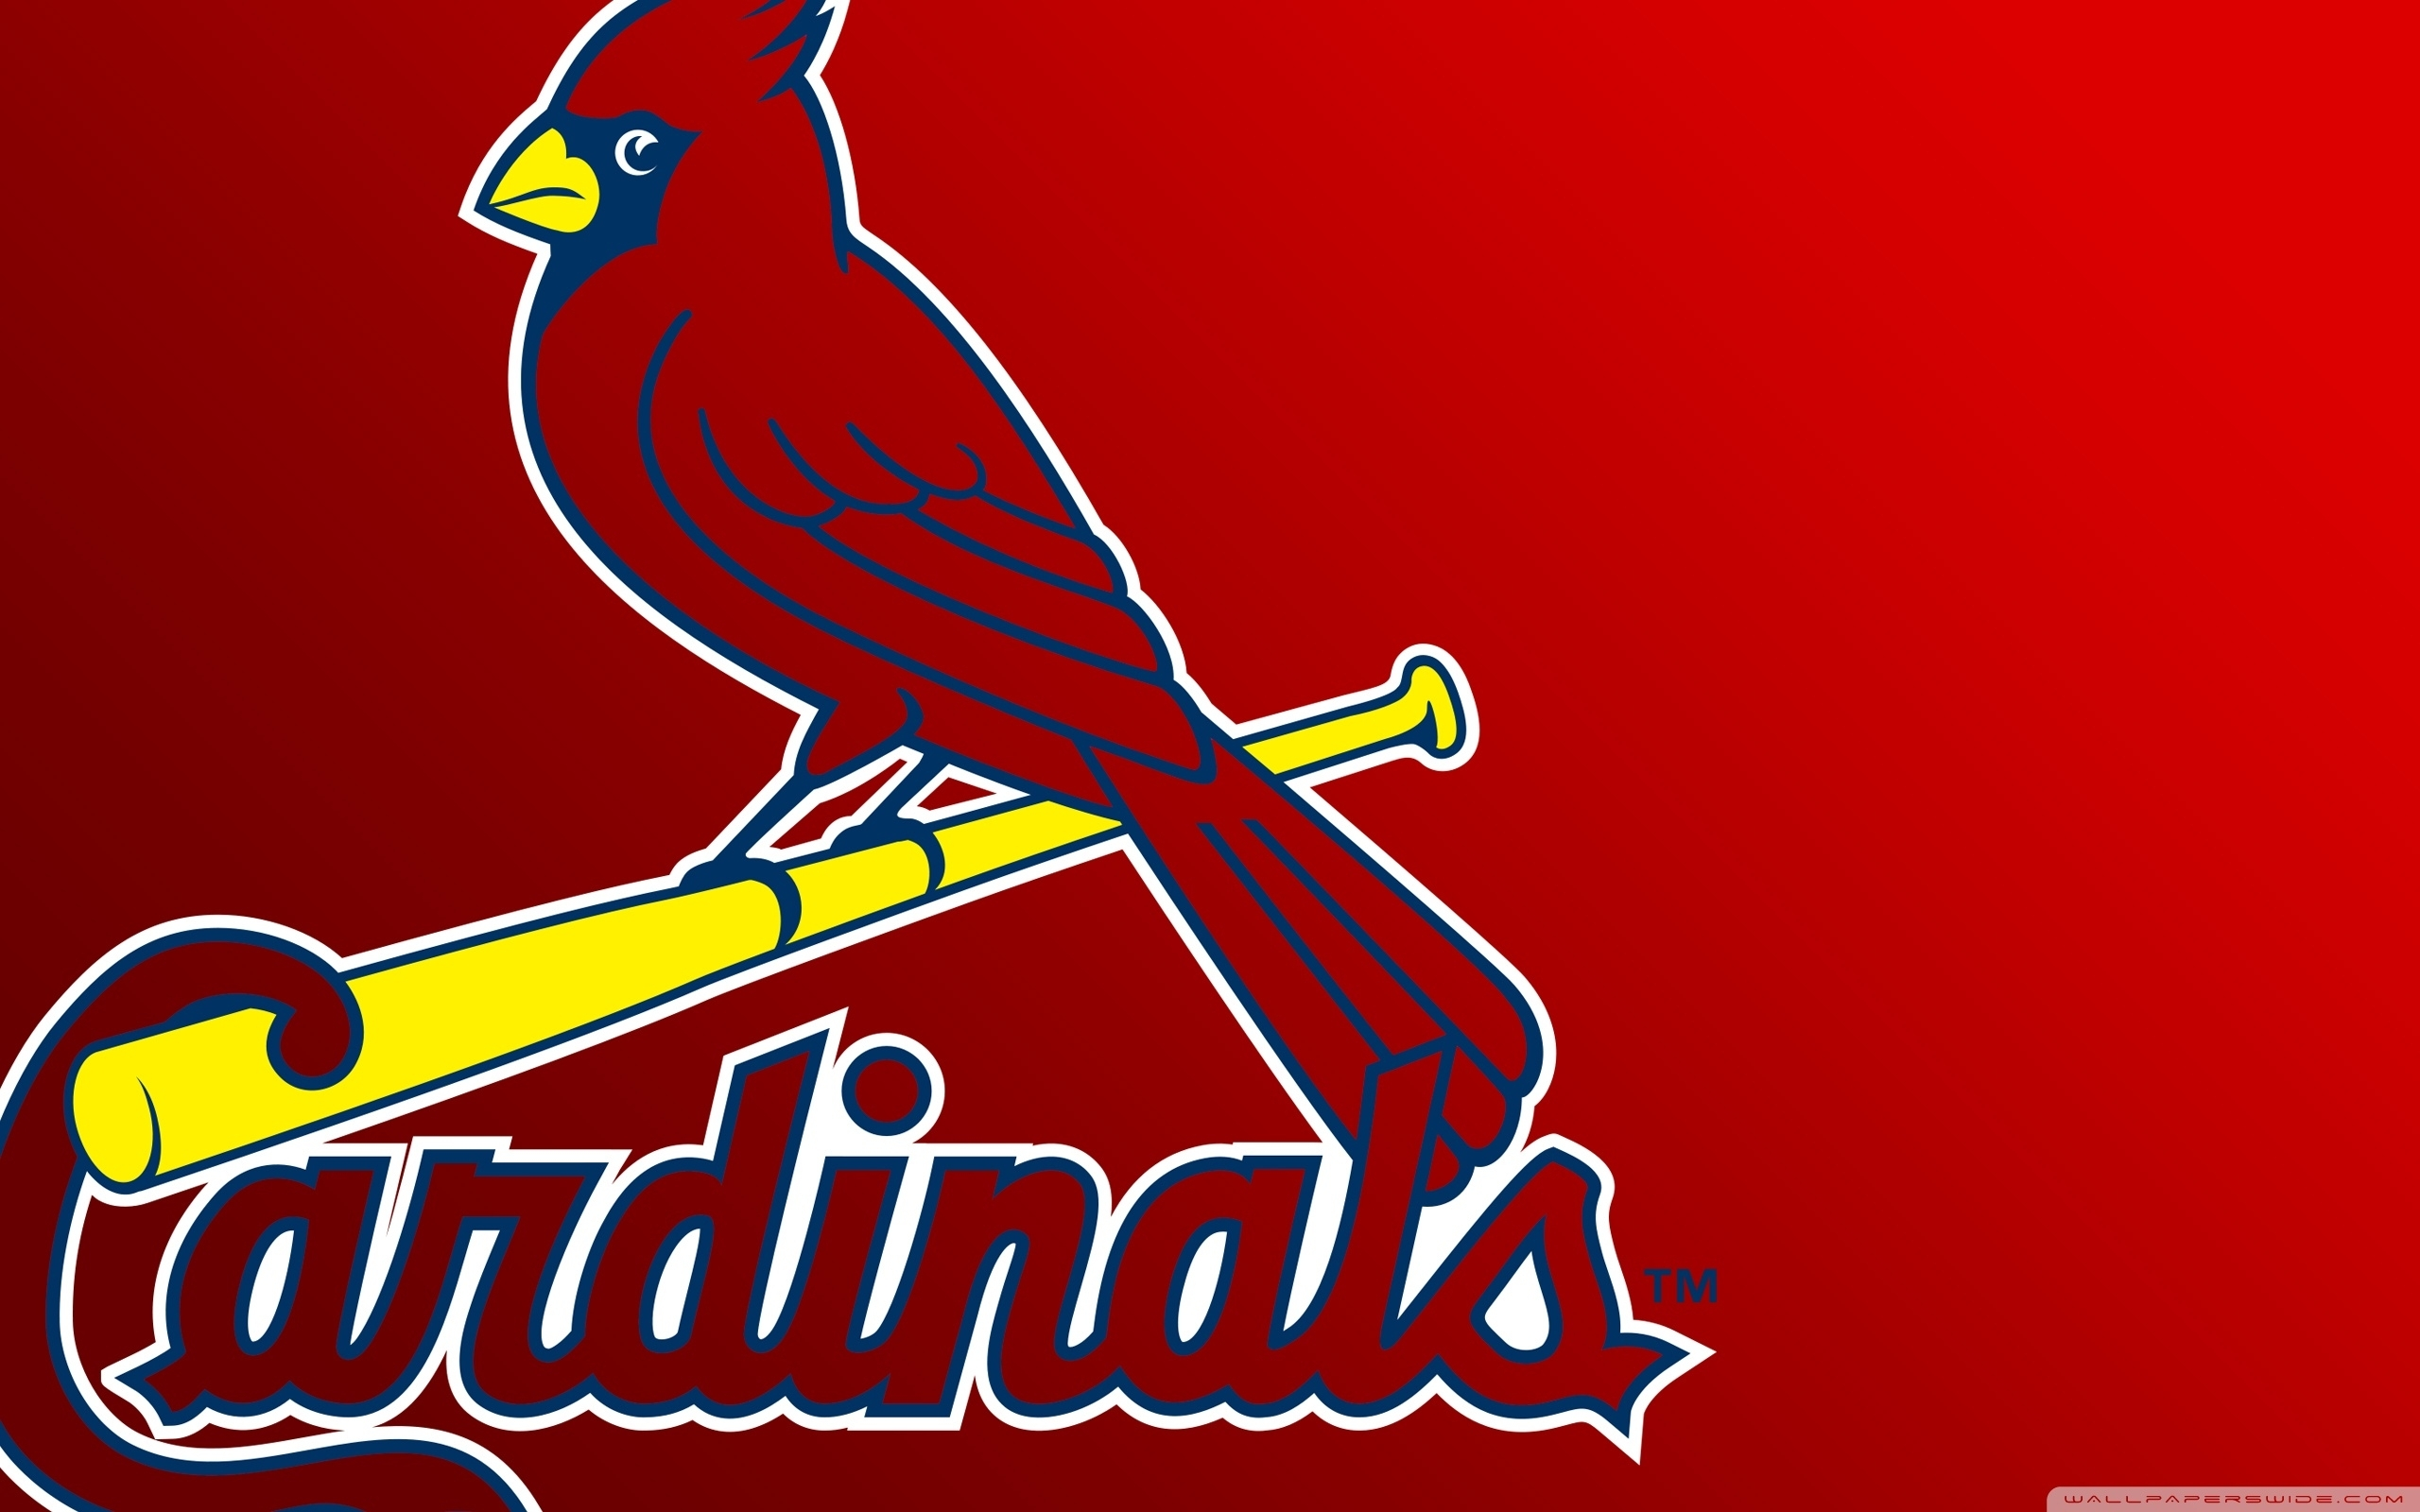 st louis cardinals logo ❤ 4k hd desktop wallpaper for